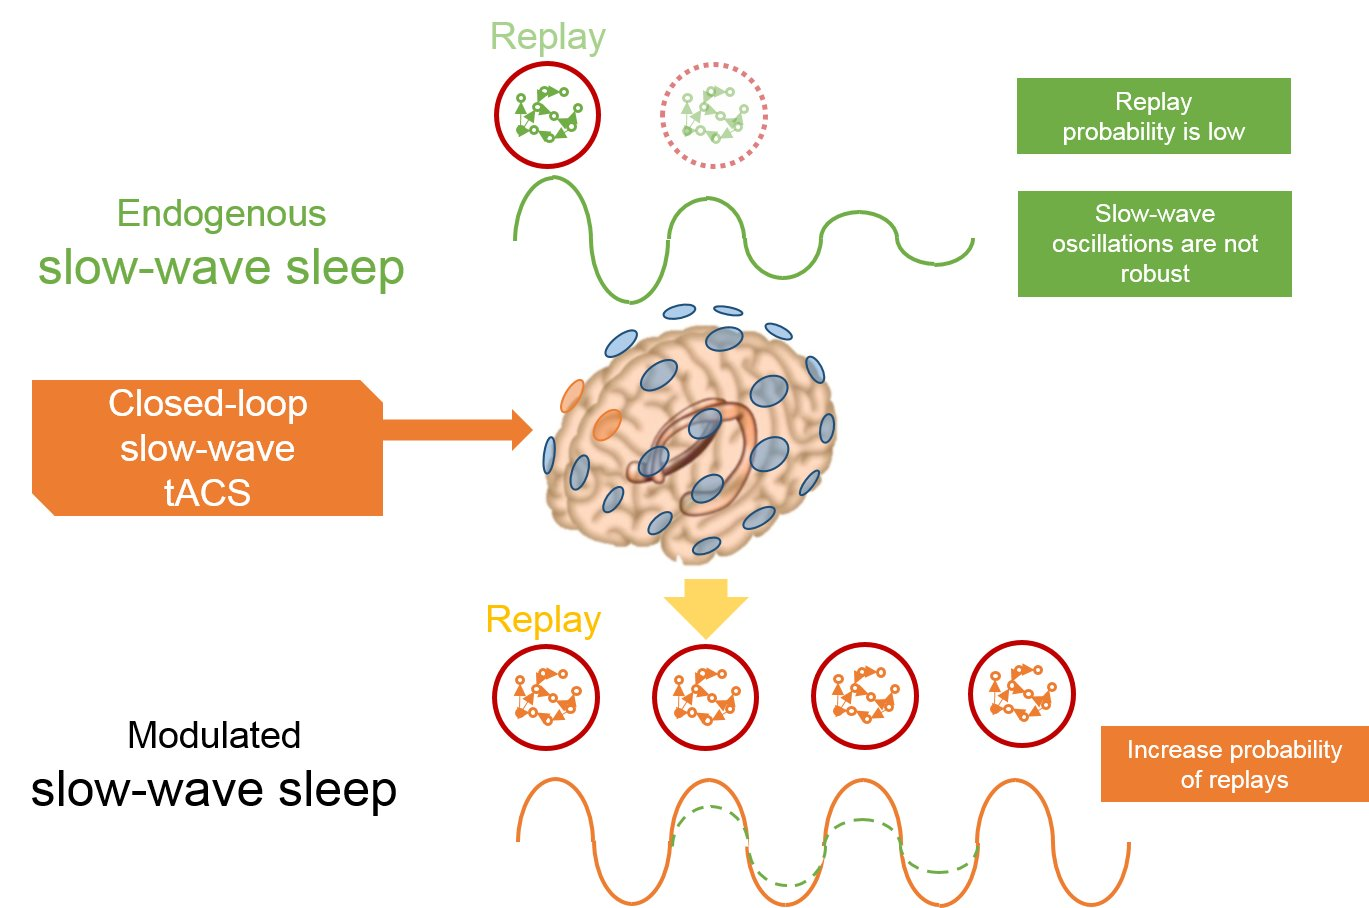 Overnight Brain Stimulation Improves Memory Alternating Current Diagram Closed Loop Transcranial Matching The Endogenous Slow Wave Oscillations During Sleep Boosts Offline Consolidation